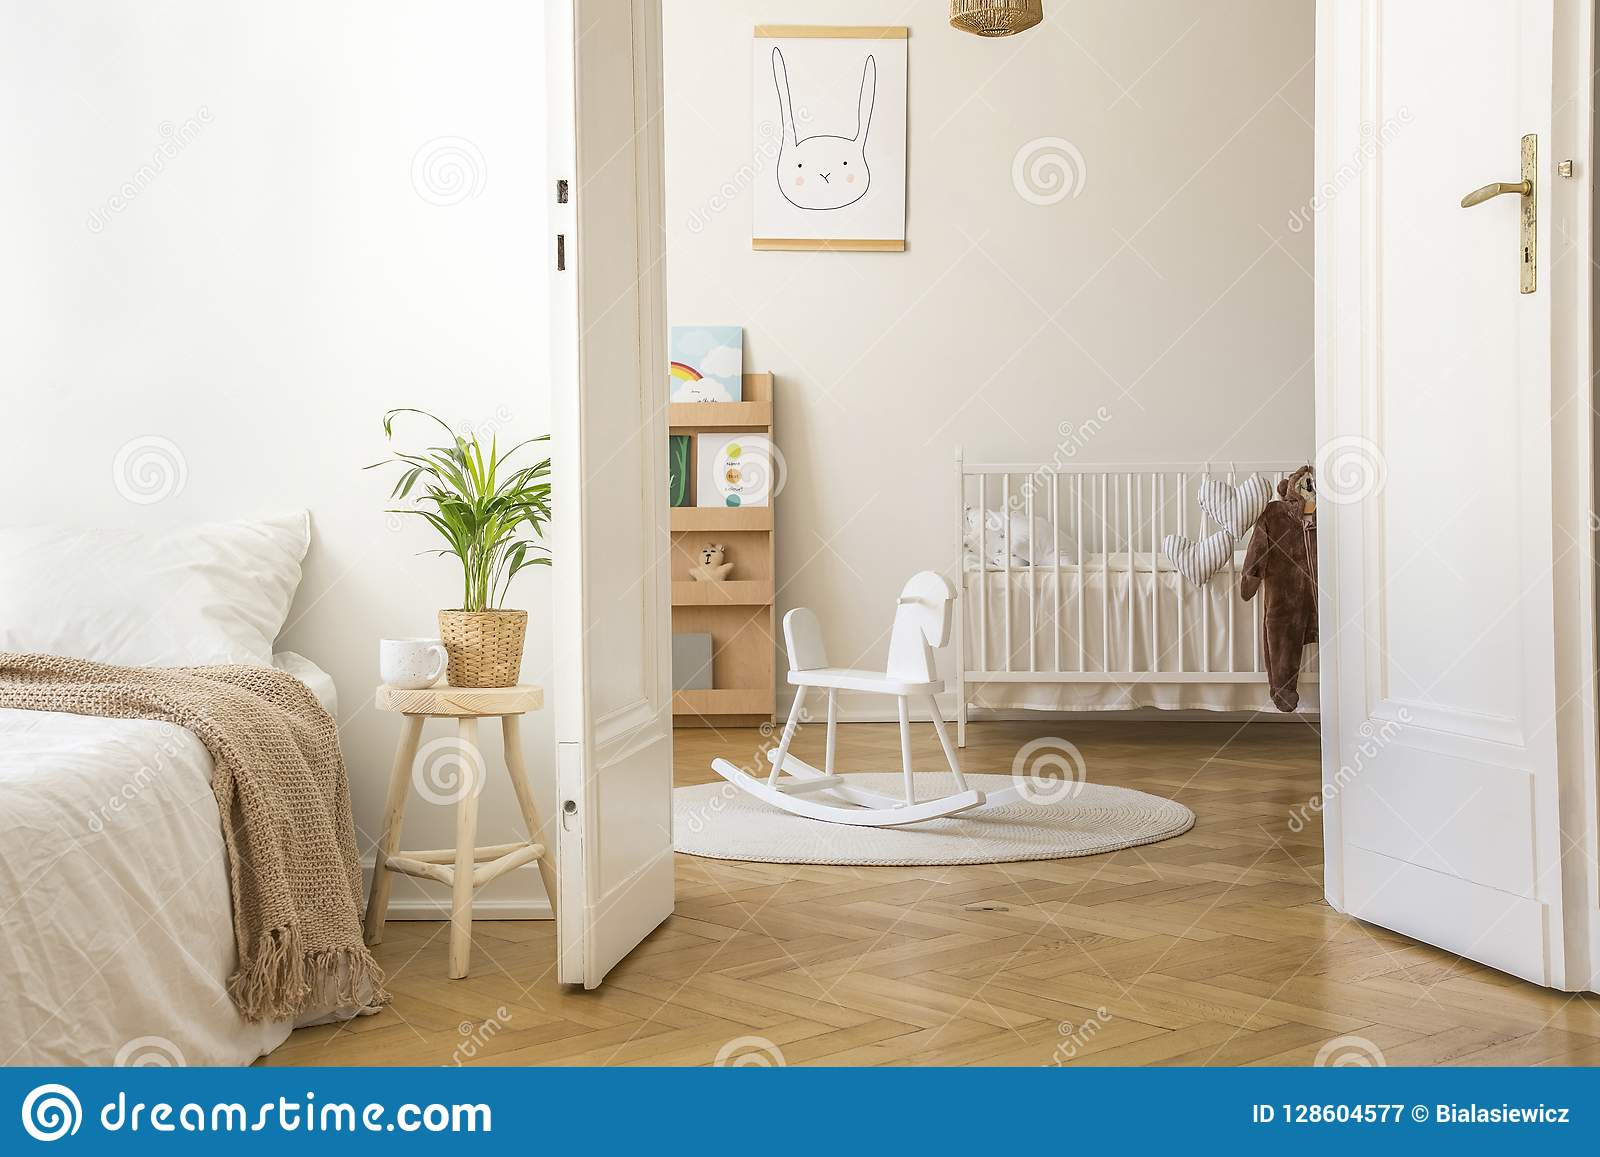 Plant on stool next to bed in white bedroom interior with rocking horse on rug and cradle